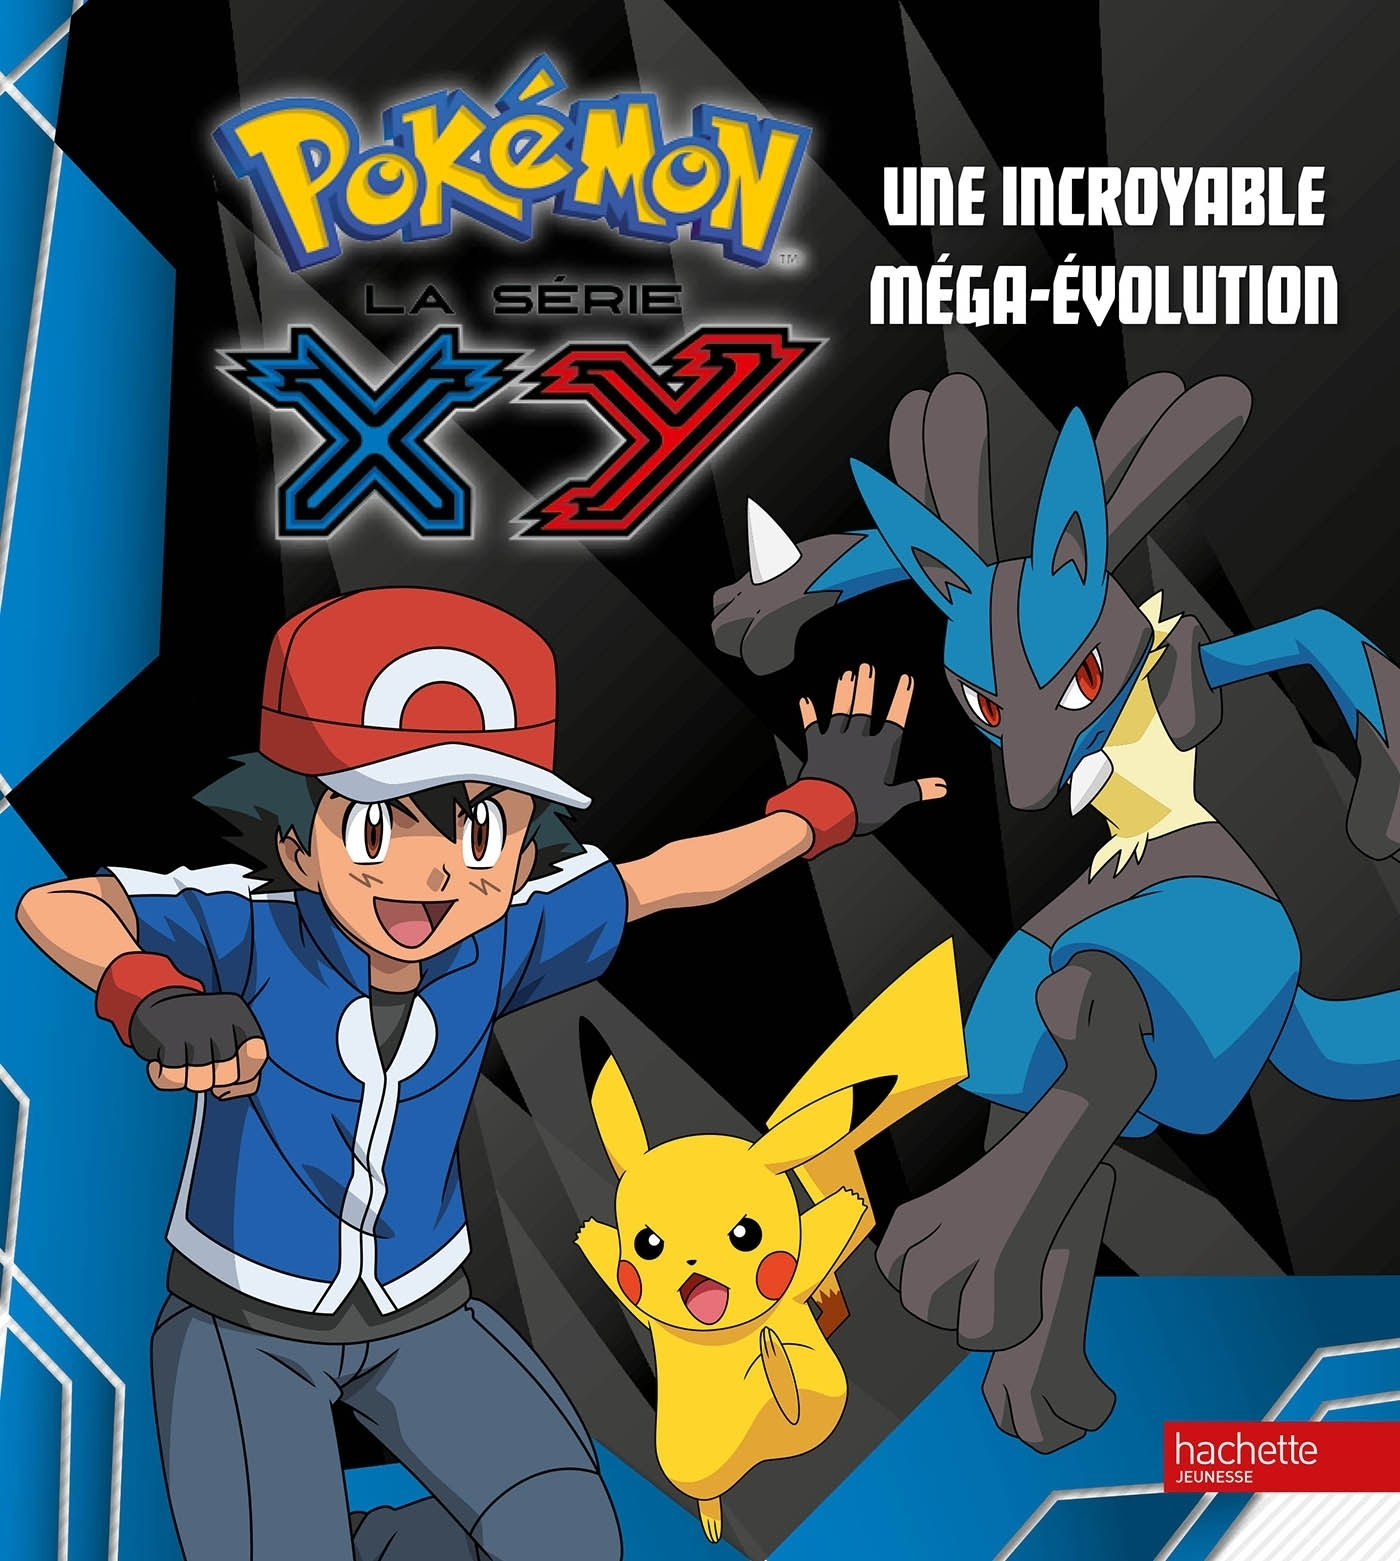 POKEMON / UNE INCROYABLE MEGA-EVOLUTION